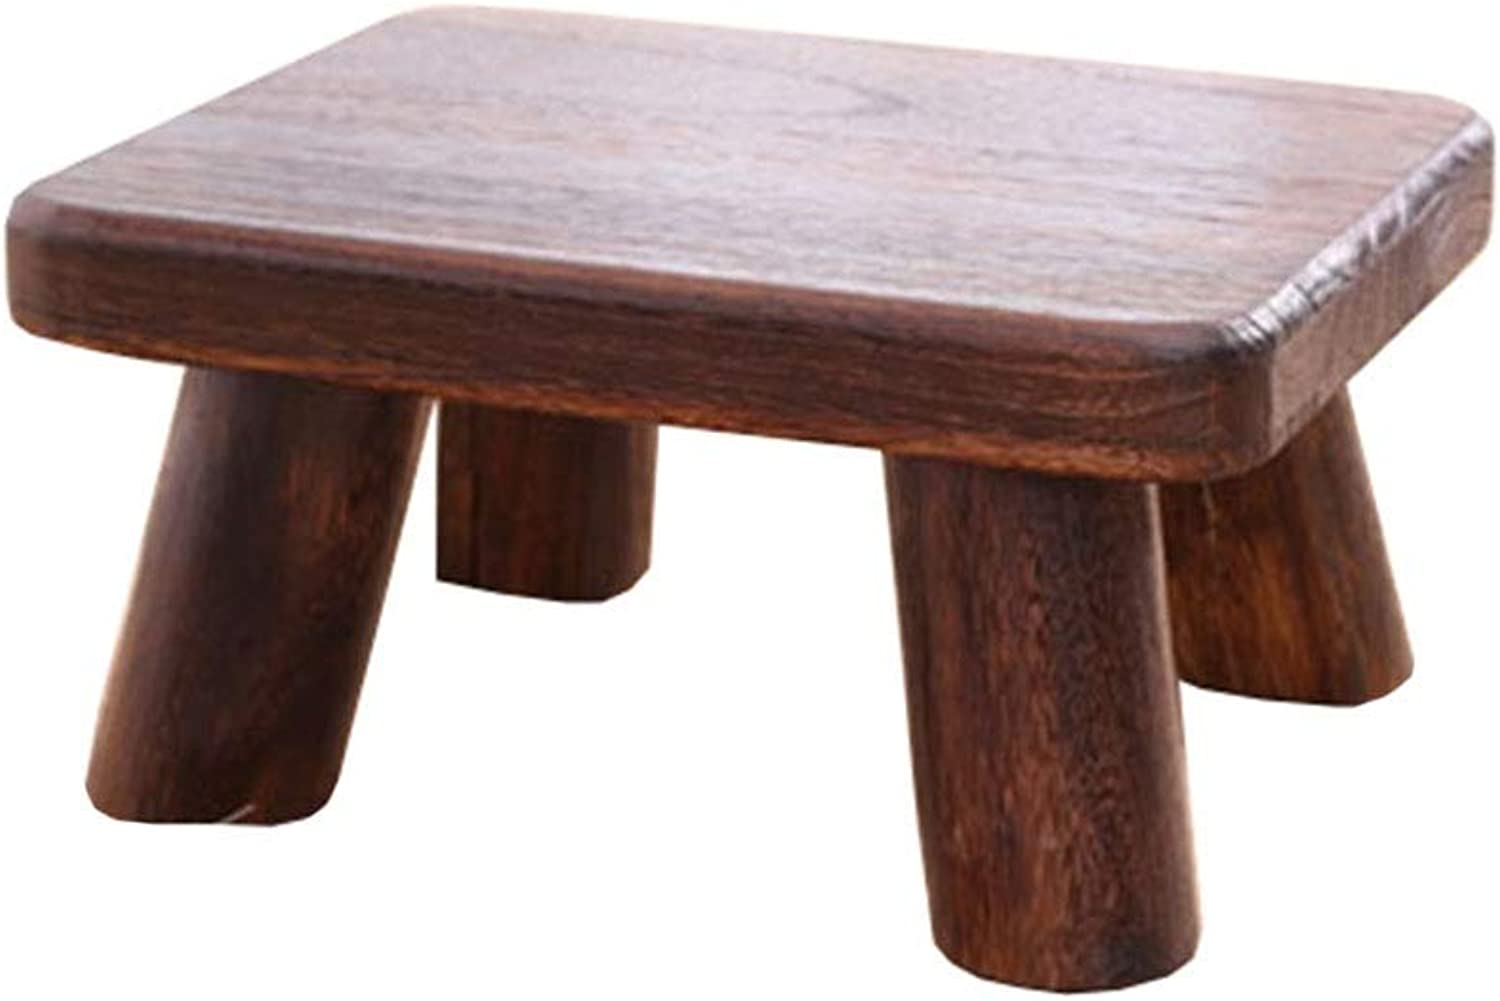 Small Stool-Solid Wood Multi-Functional Low Stool Stool shoes Bench Small Bench Home Tea Coffee Table Sofa Stool FENPING (color   Burnt color, Size   36  26.5  18cm)